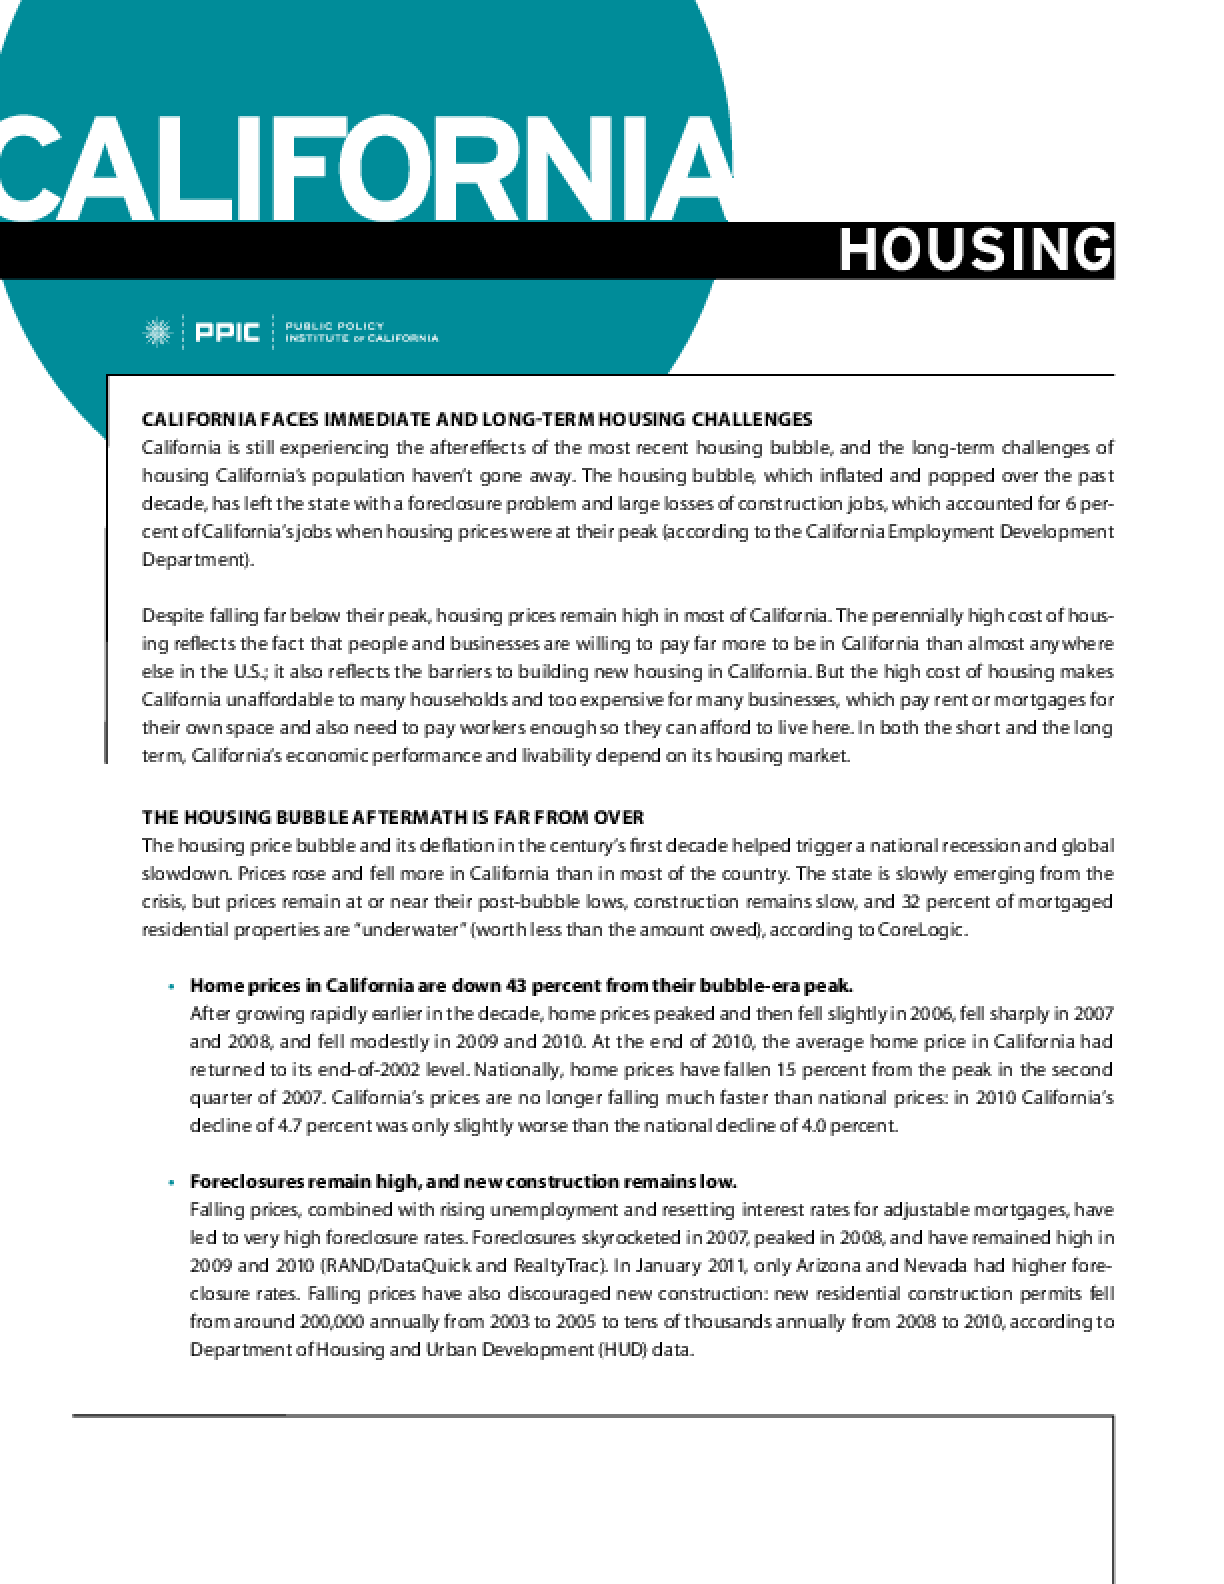 California Housing: Planning for a Better Future